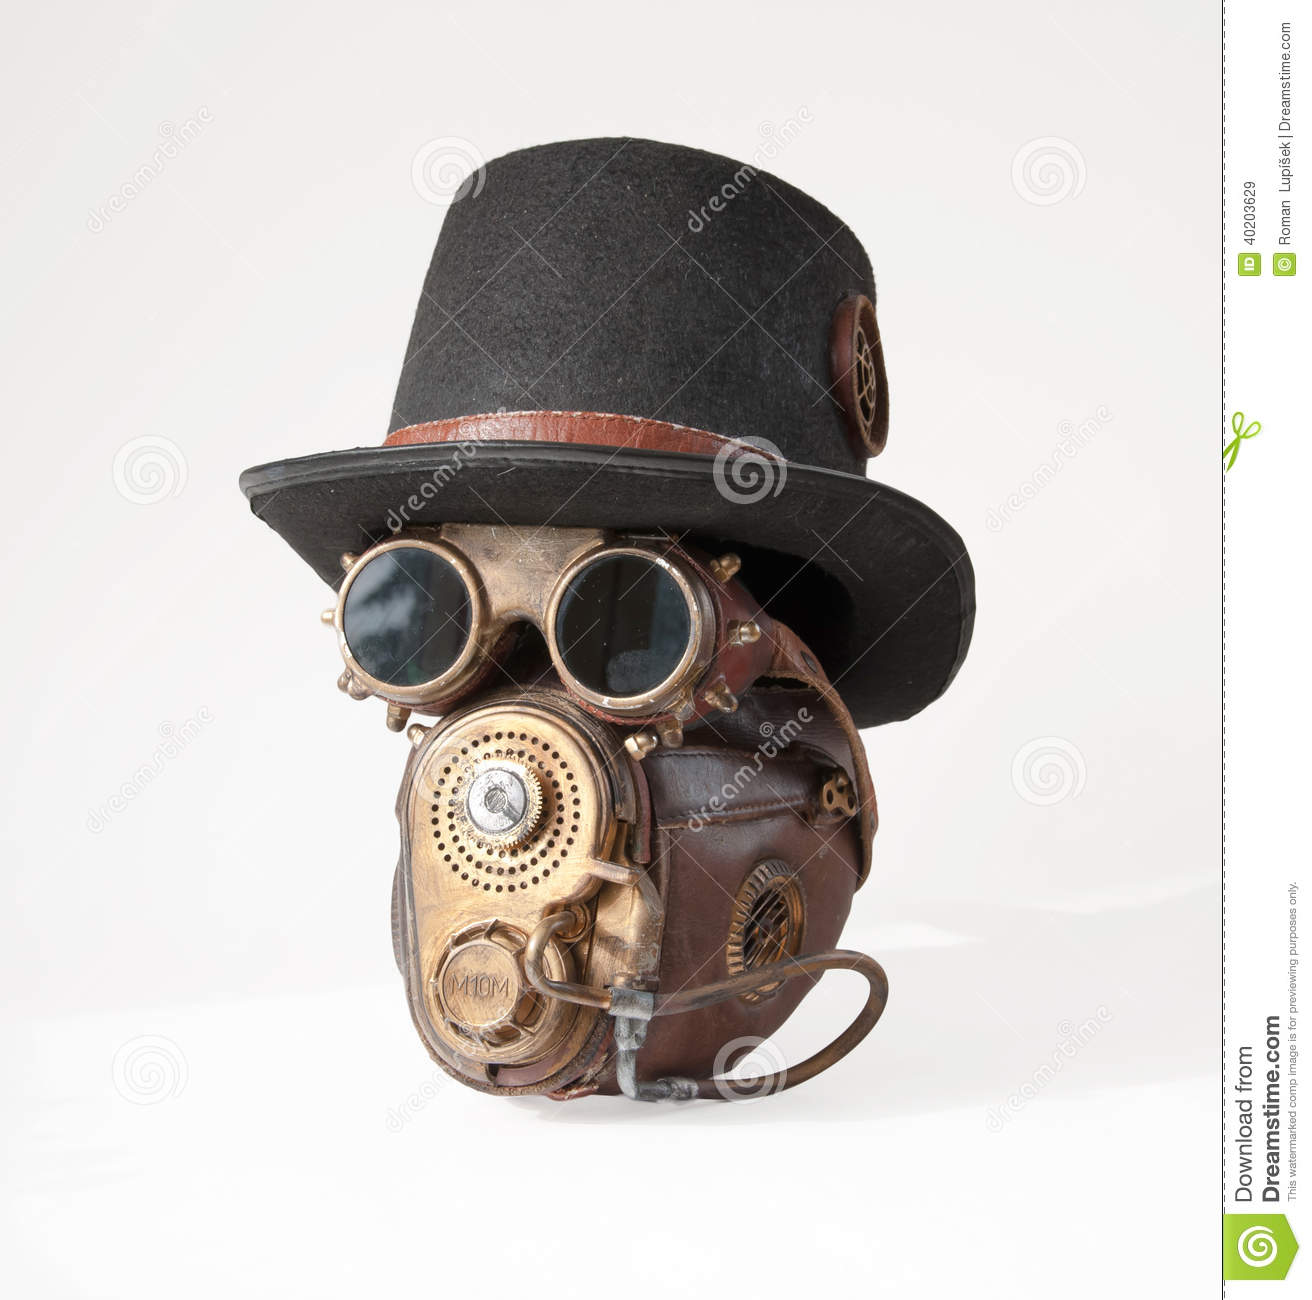 Steampunk Hat, Goggles And Mask Stock Photo - Image: 40203629